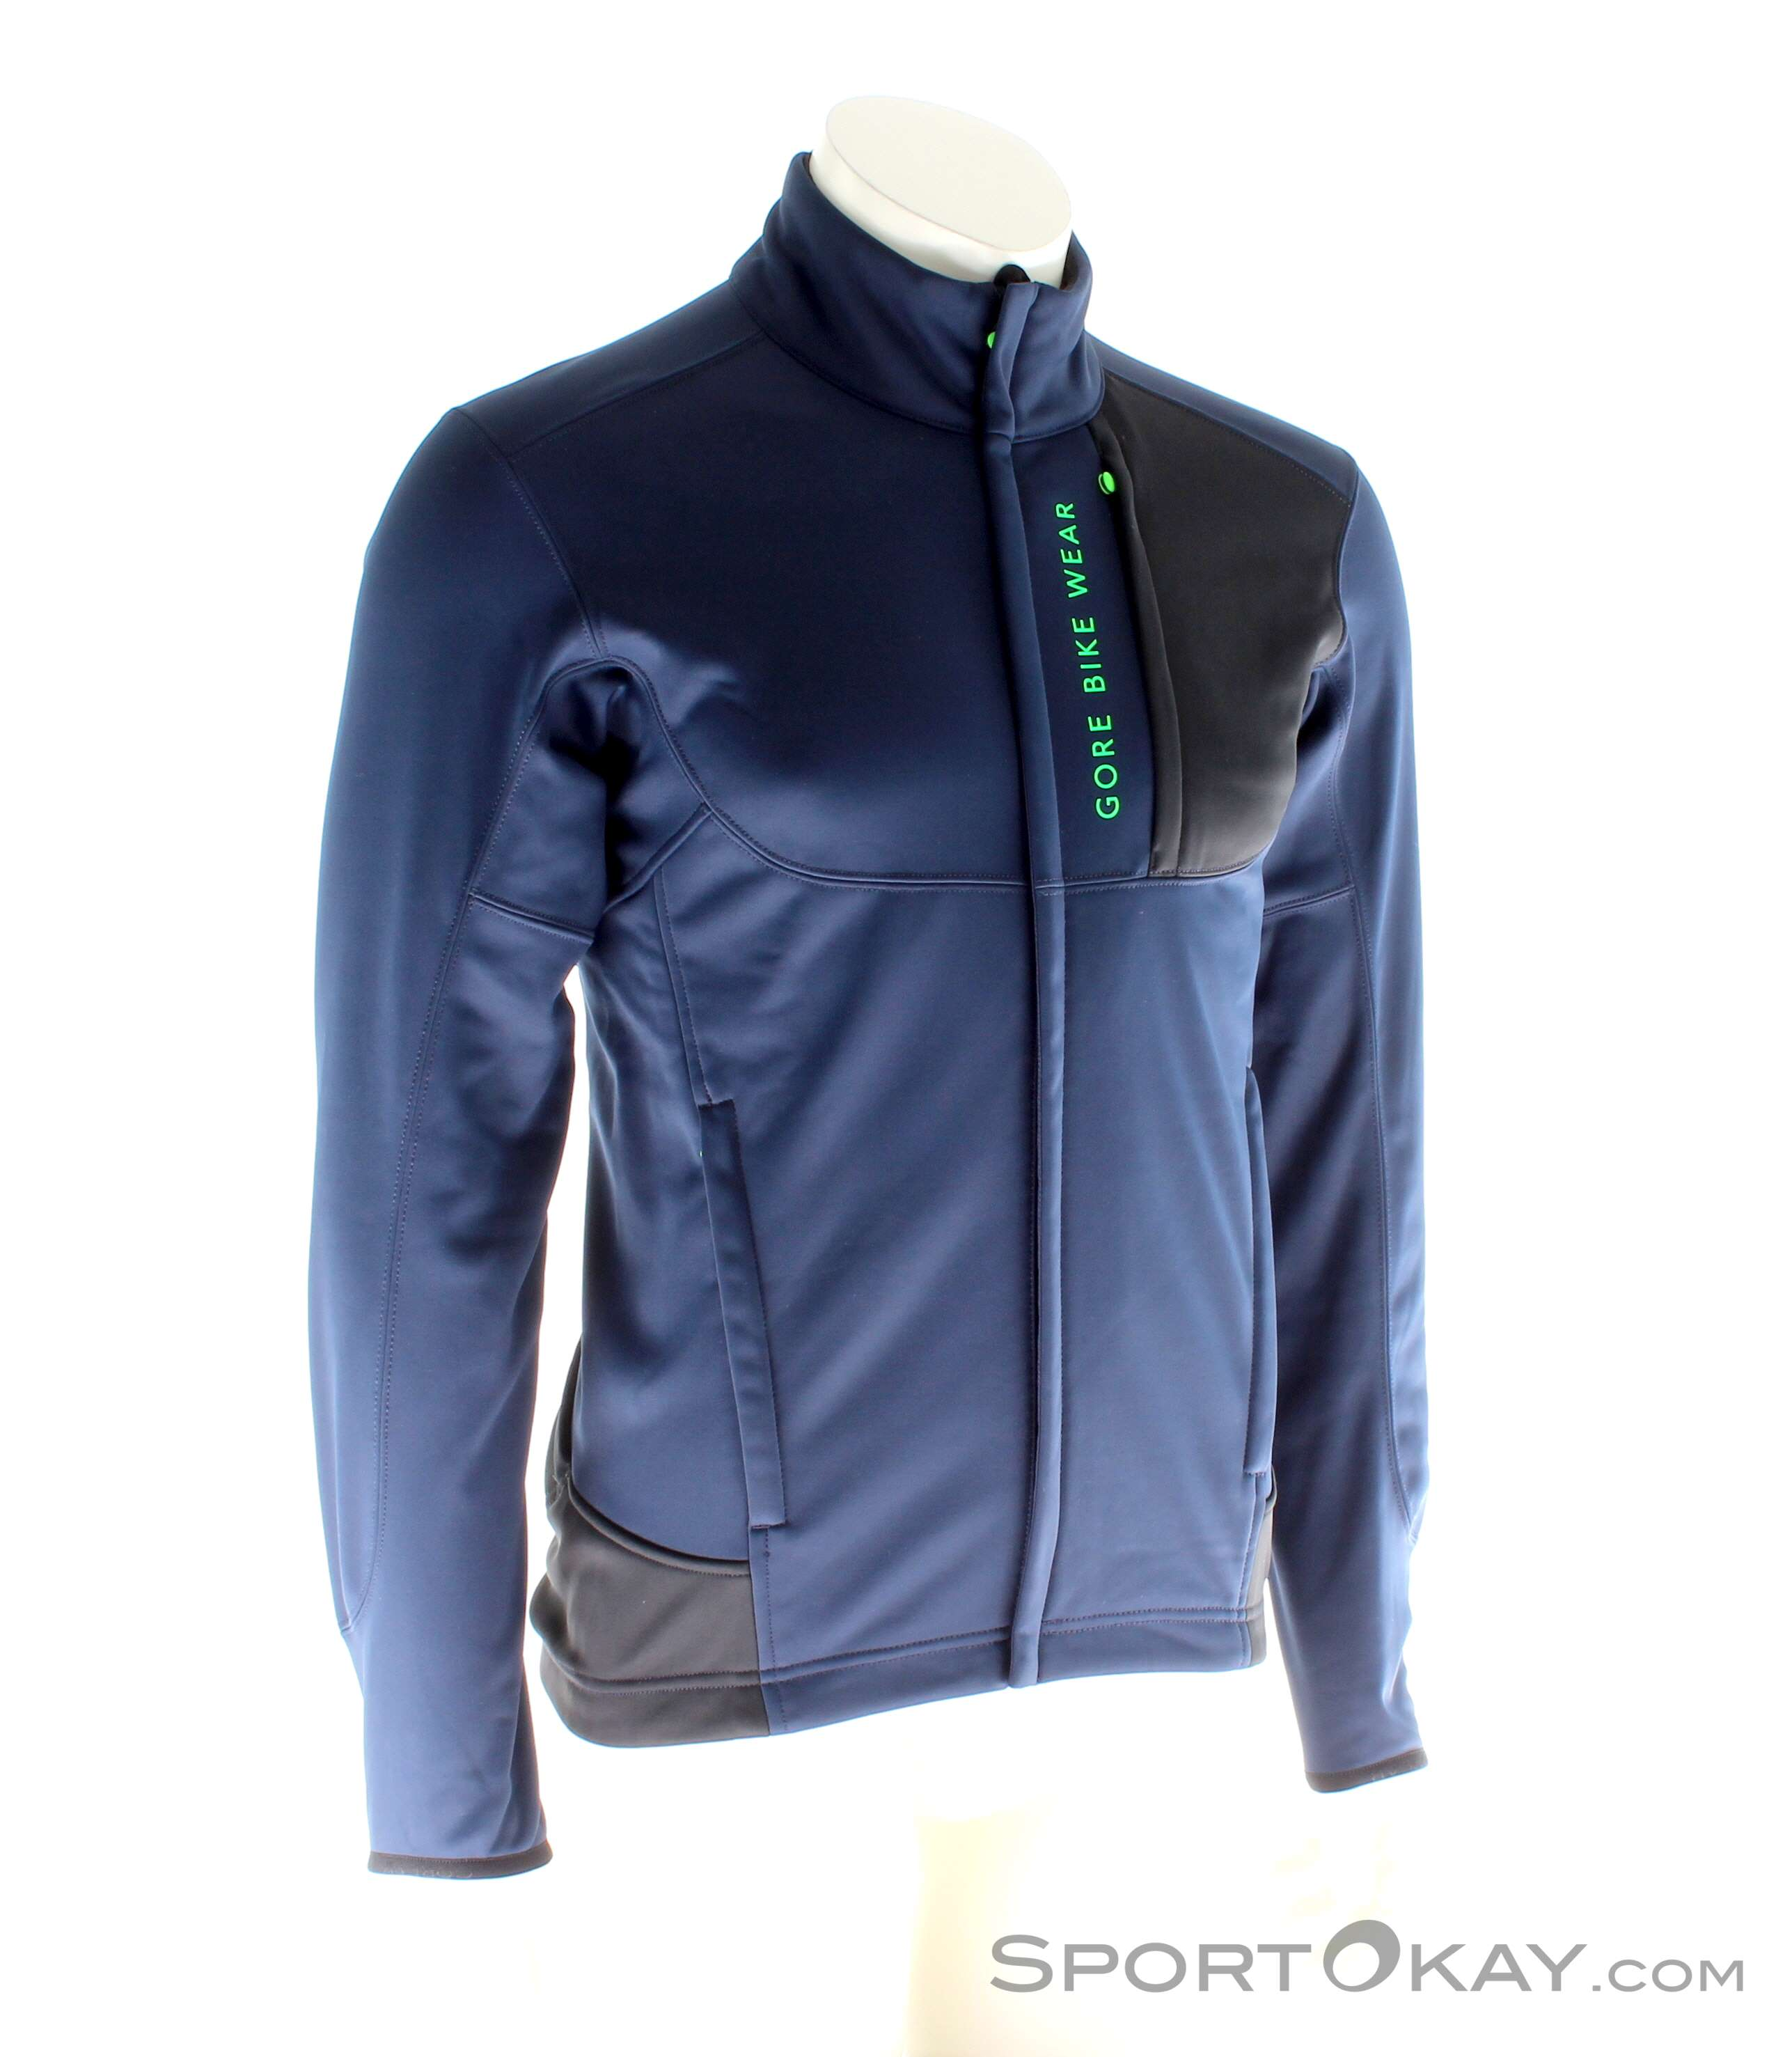 Gore Bike Wear Power Trail Thermo Mens Biking Jacket - Jackets ... 4b58a2b32